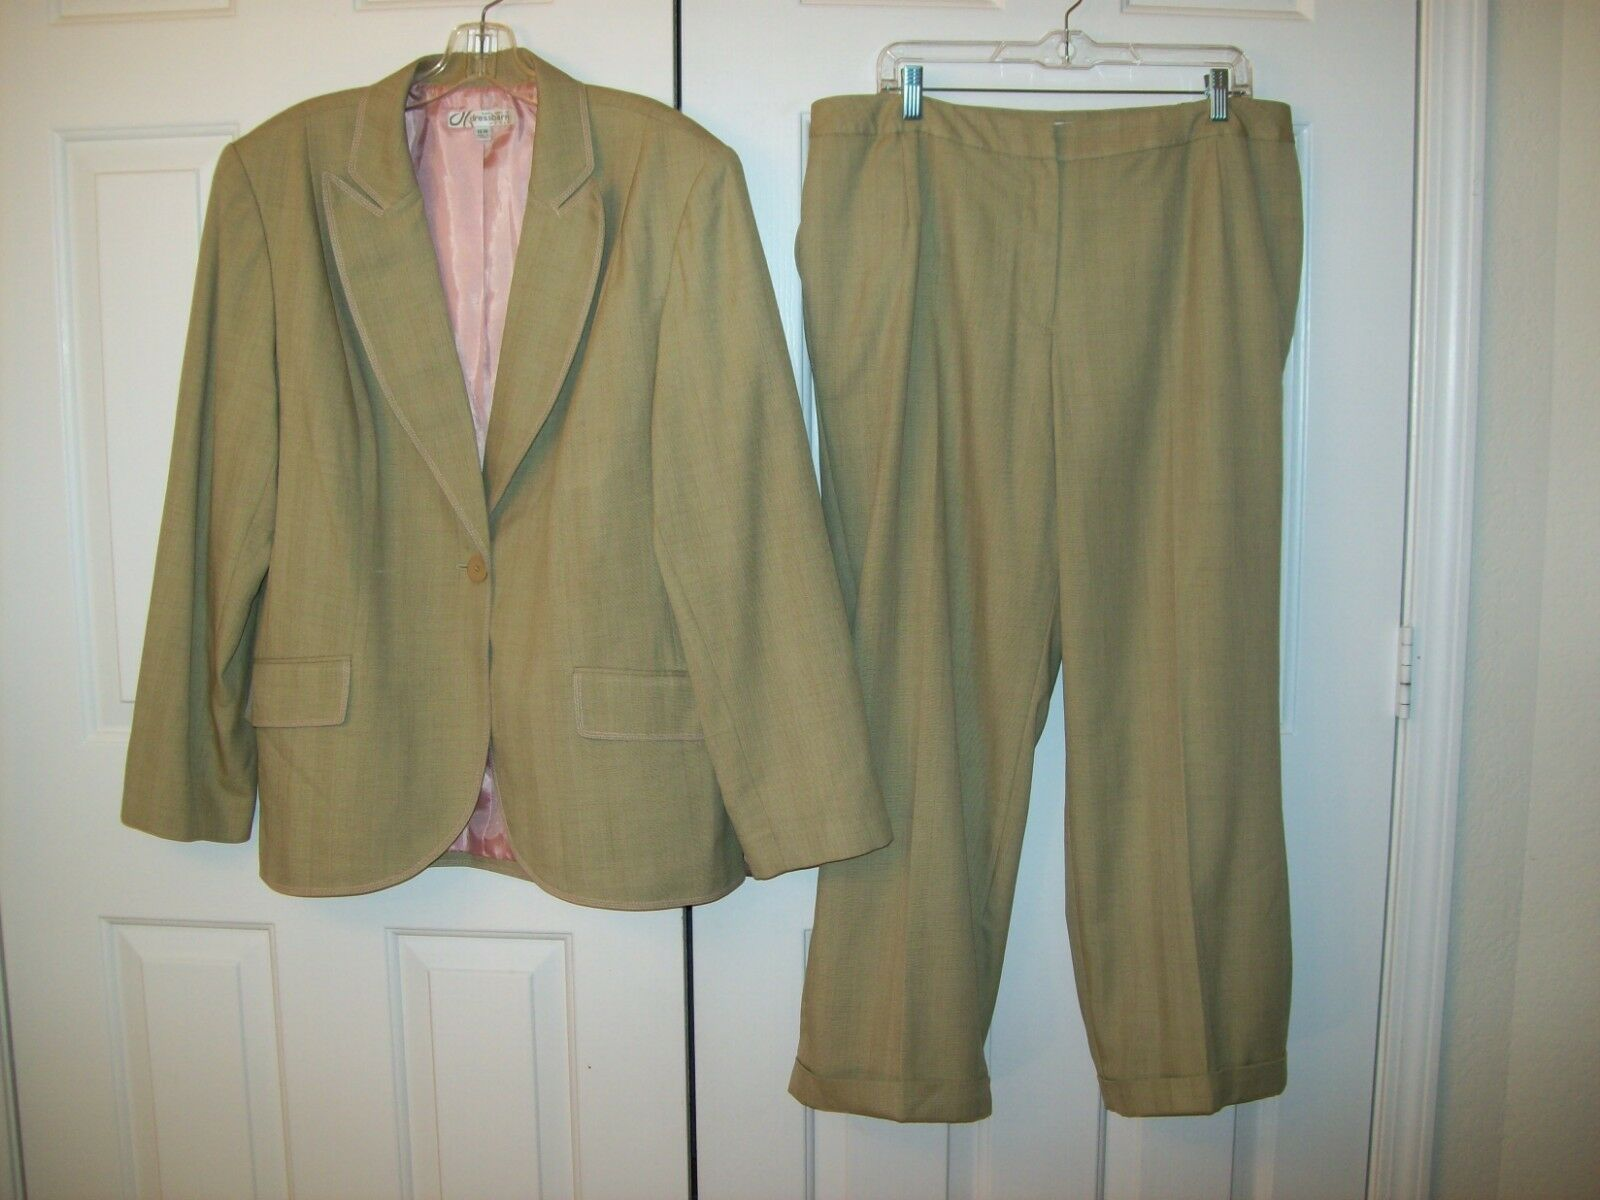 Dressbarn lined polyester blend pant suit size 18W